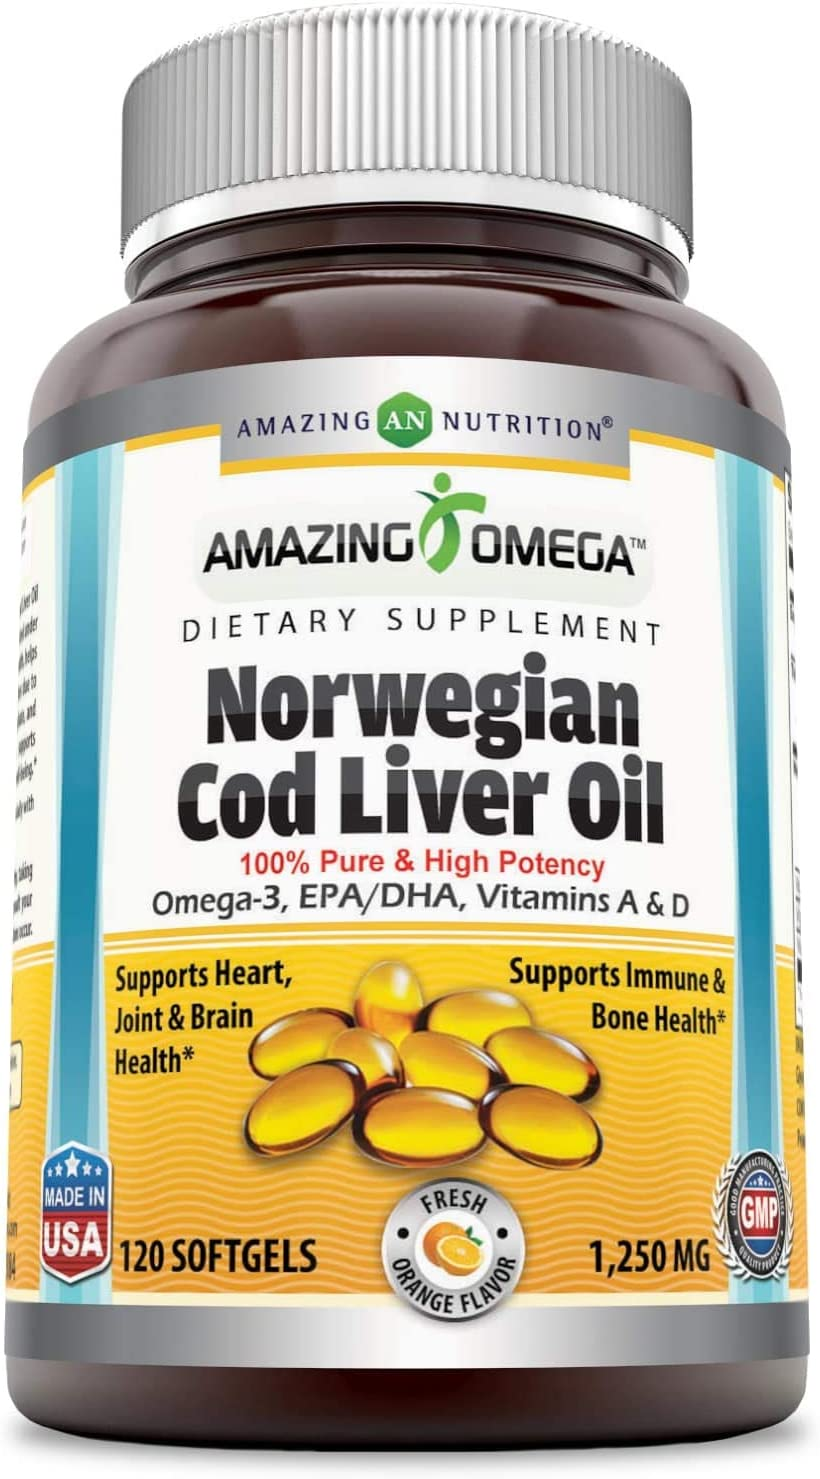 Amazing Omega Norwegian Cod Liver Oil 1250mg 120 Softgels -Extracted Under Strict Quality Standards from Around The Waters of Norway -Supports Heart, Brain, Joint, Bone & Immune Health*